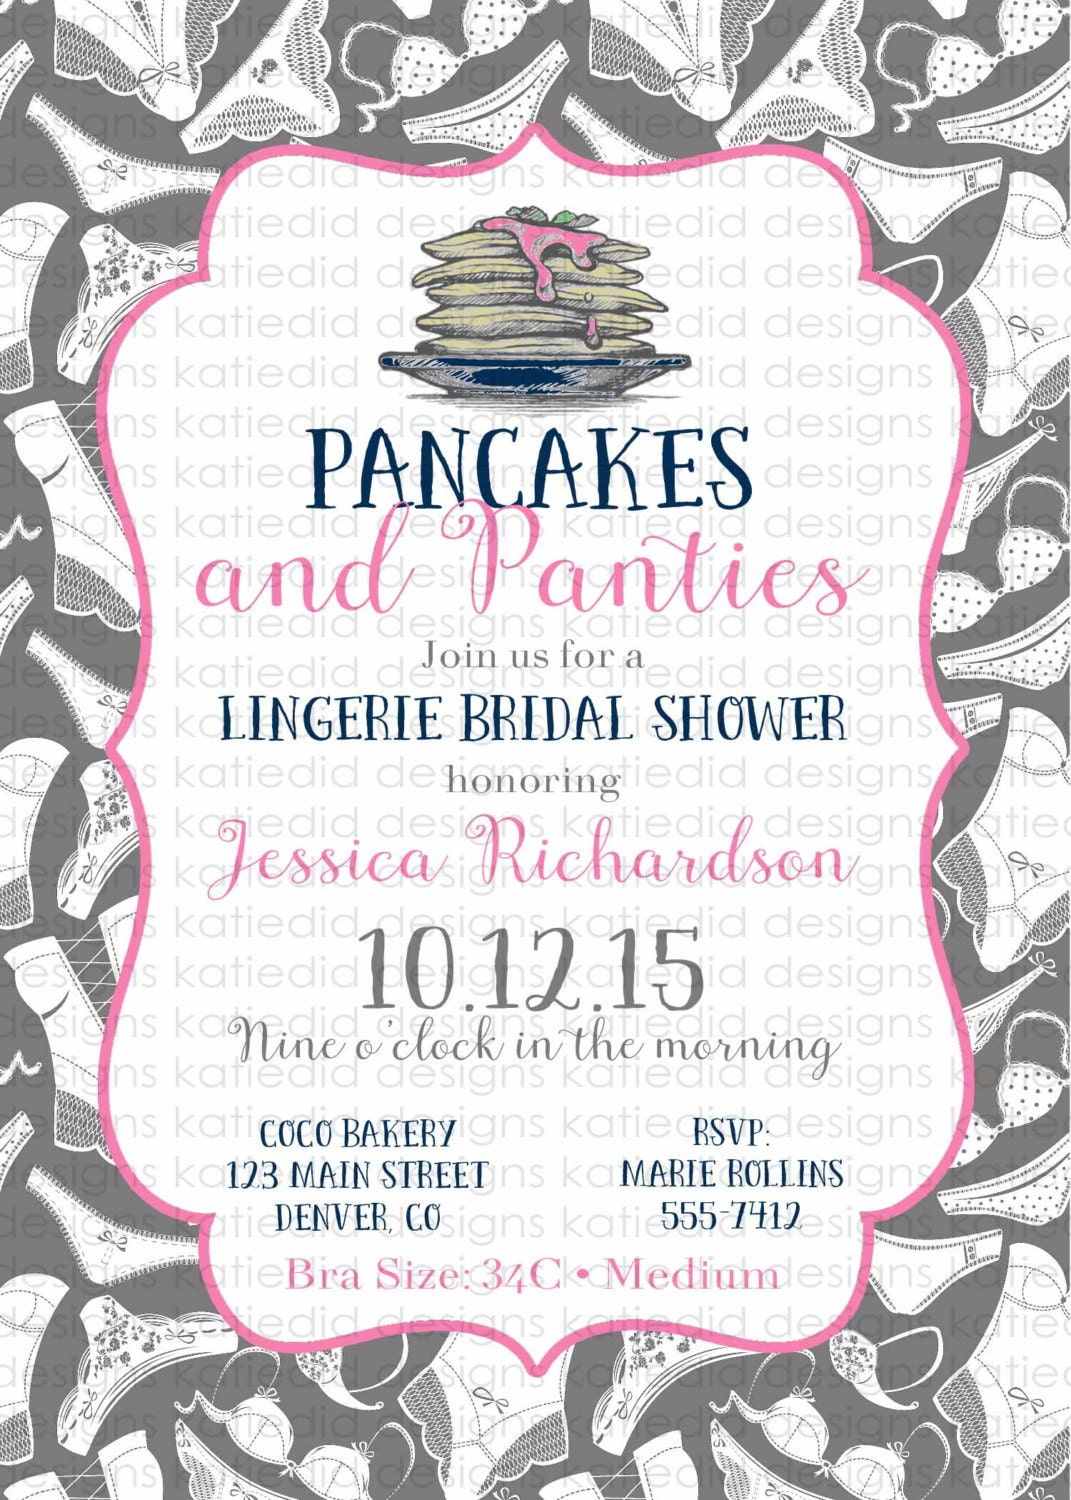 bridal shower invitation pancakes and panties lingerie panty ...